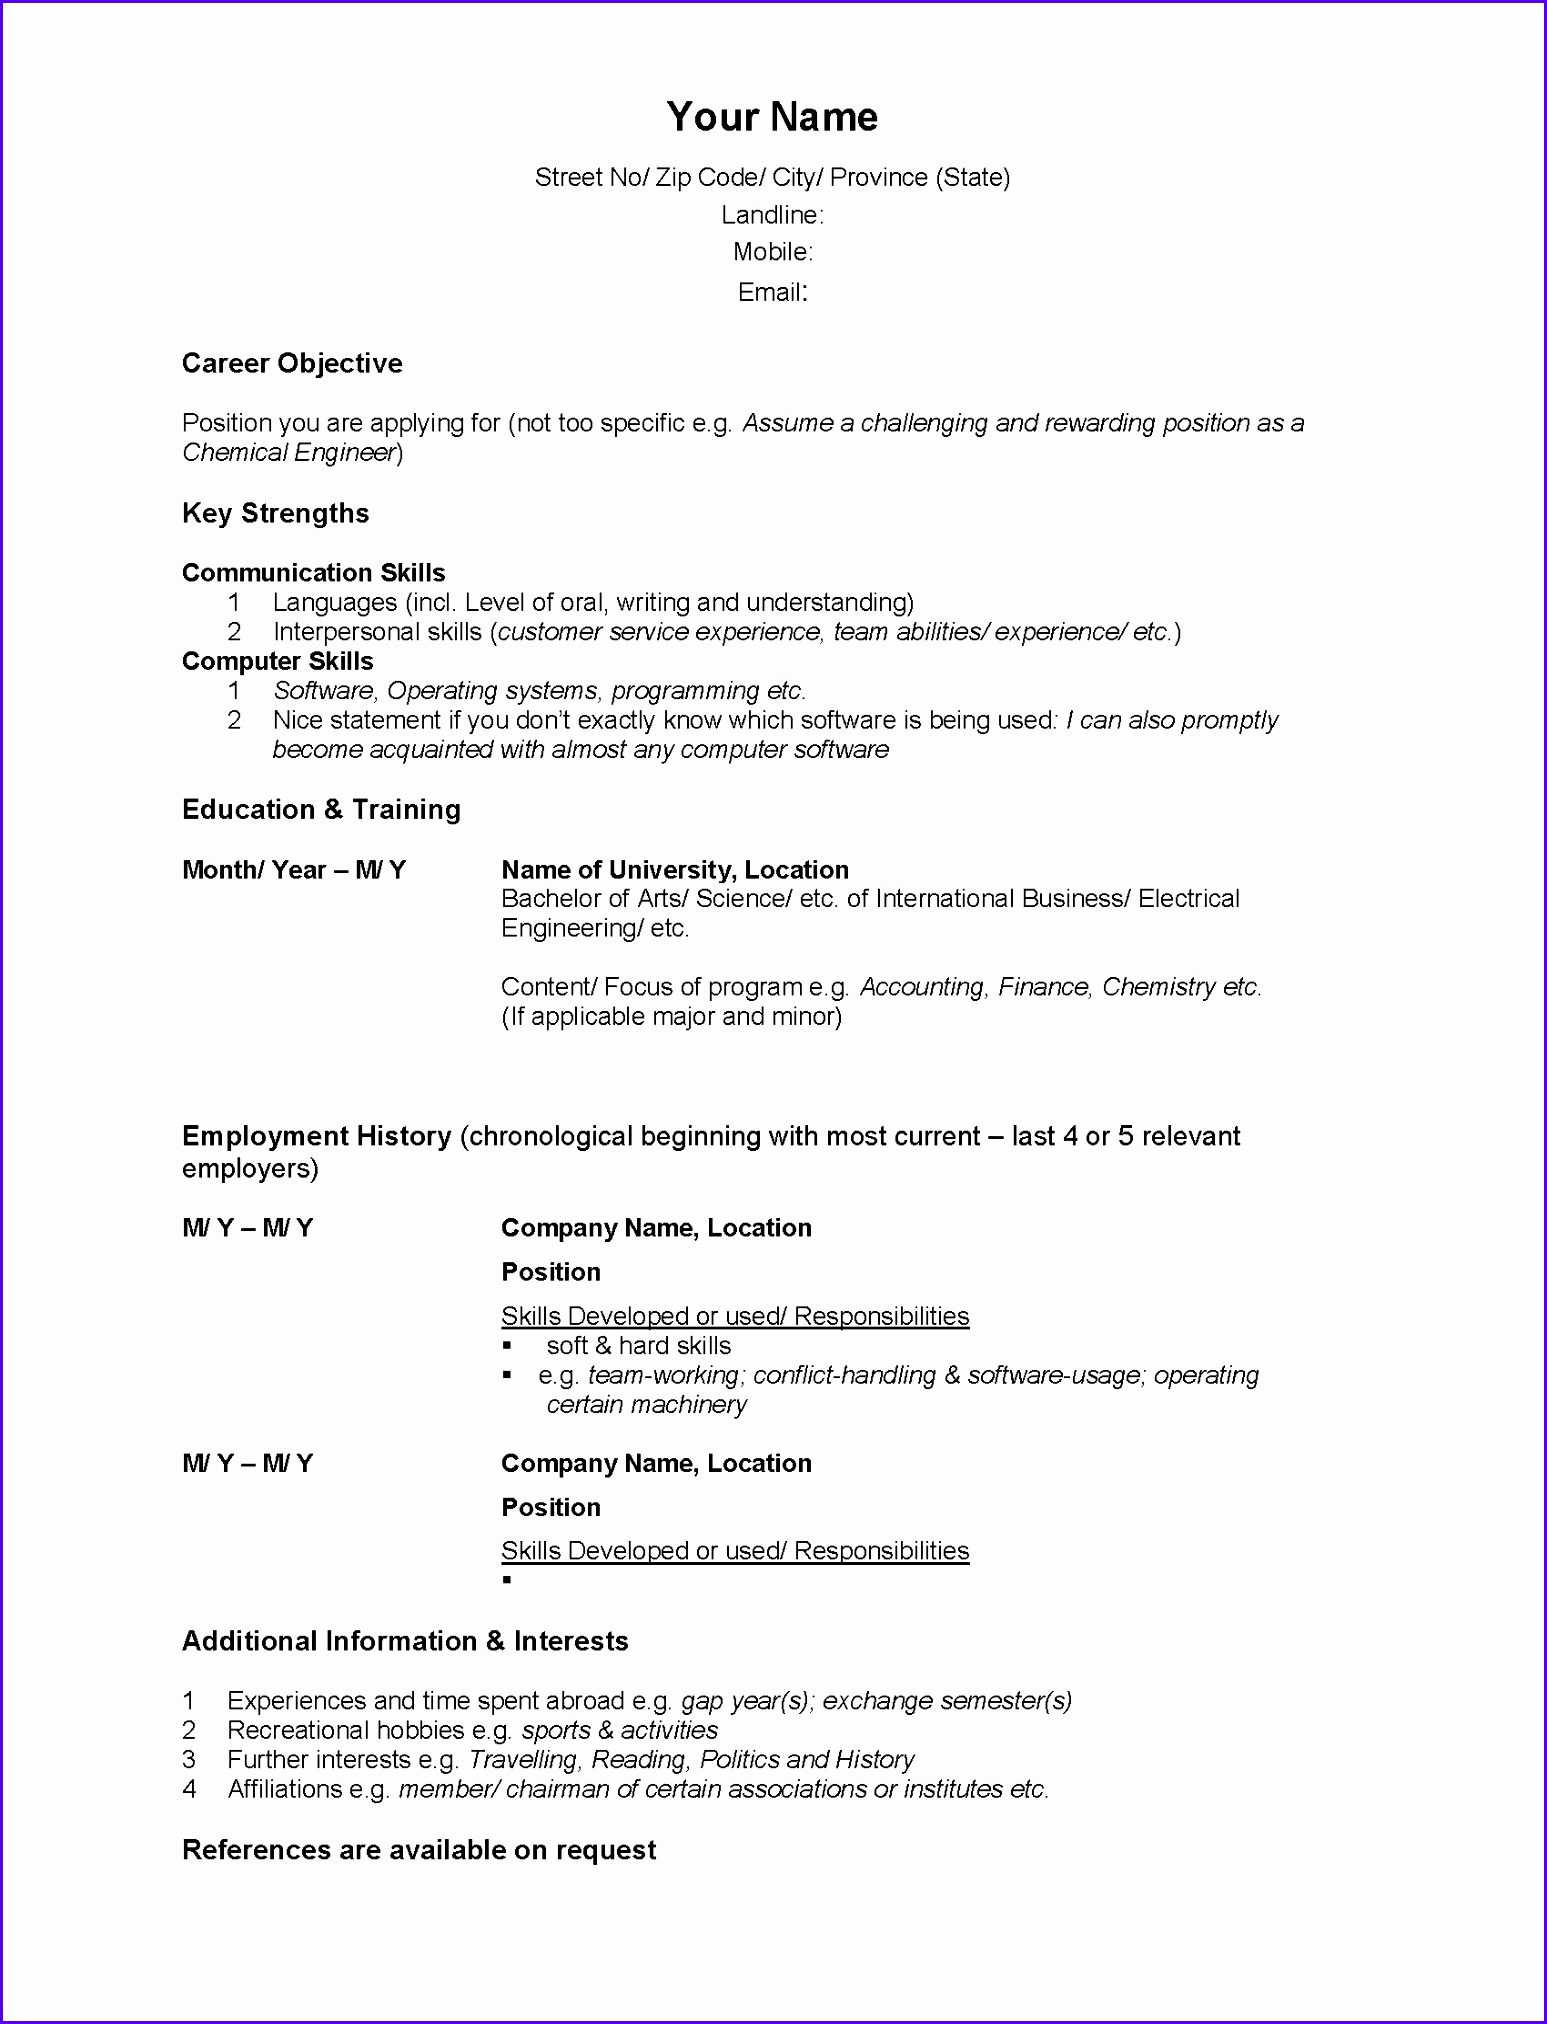 Resume Summary Statement Examples Customer Service 12 Fresh Statement Of Account Template Exceltemplates